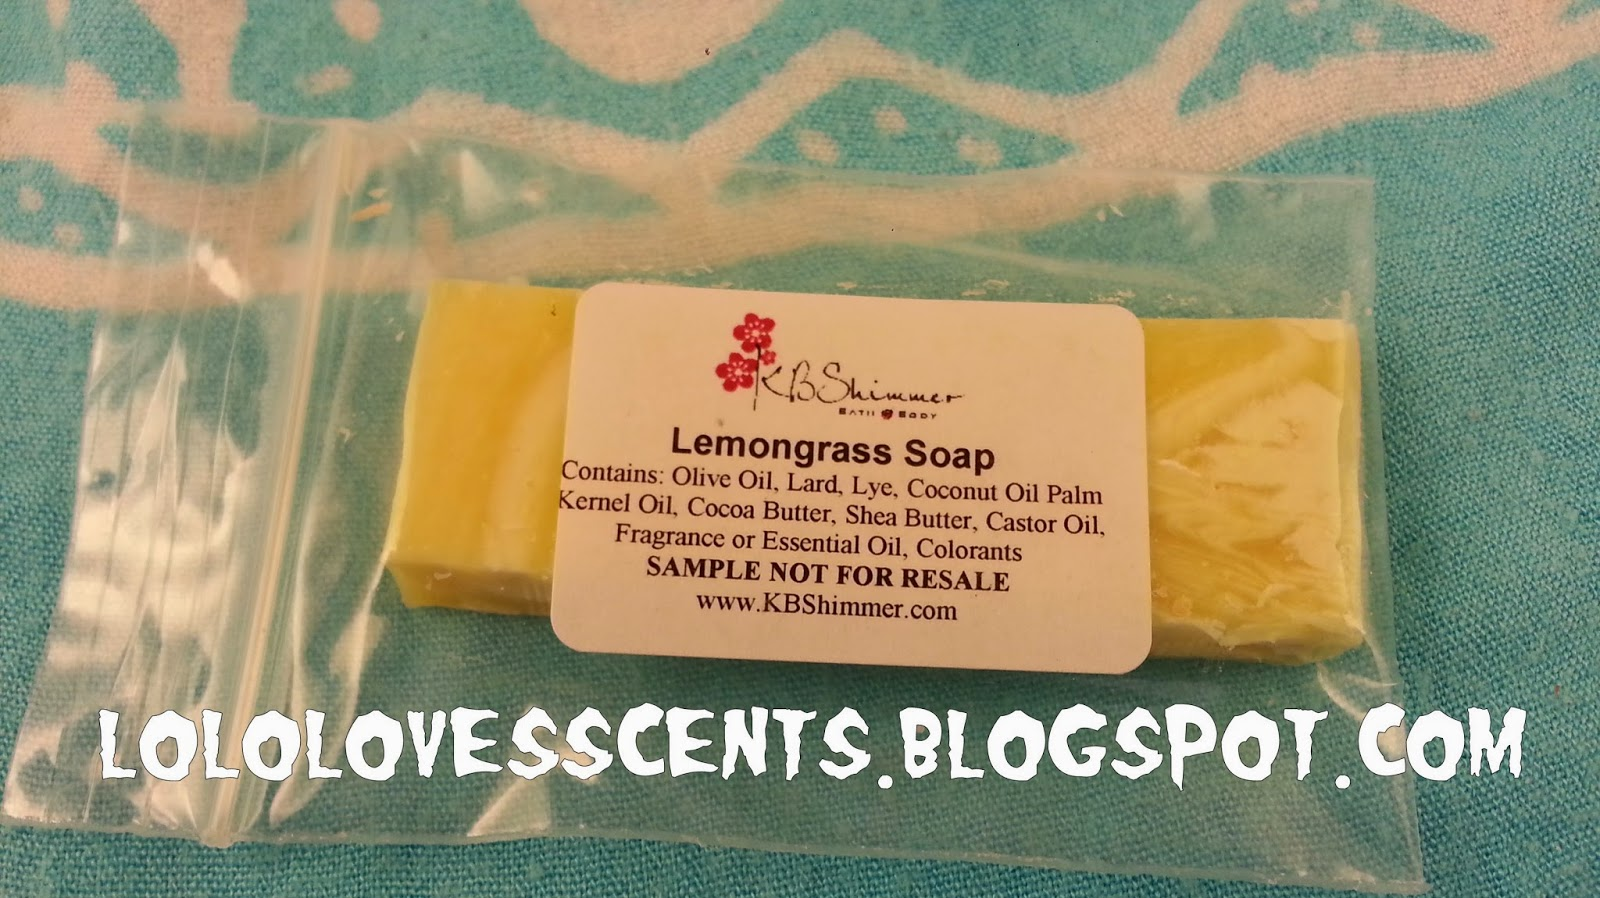 Lolo loves scents random post kbshimmer fall 2014 nail for Fall soap scents